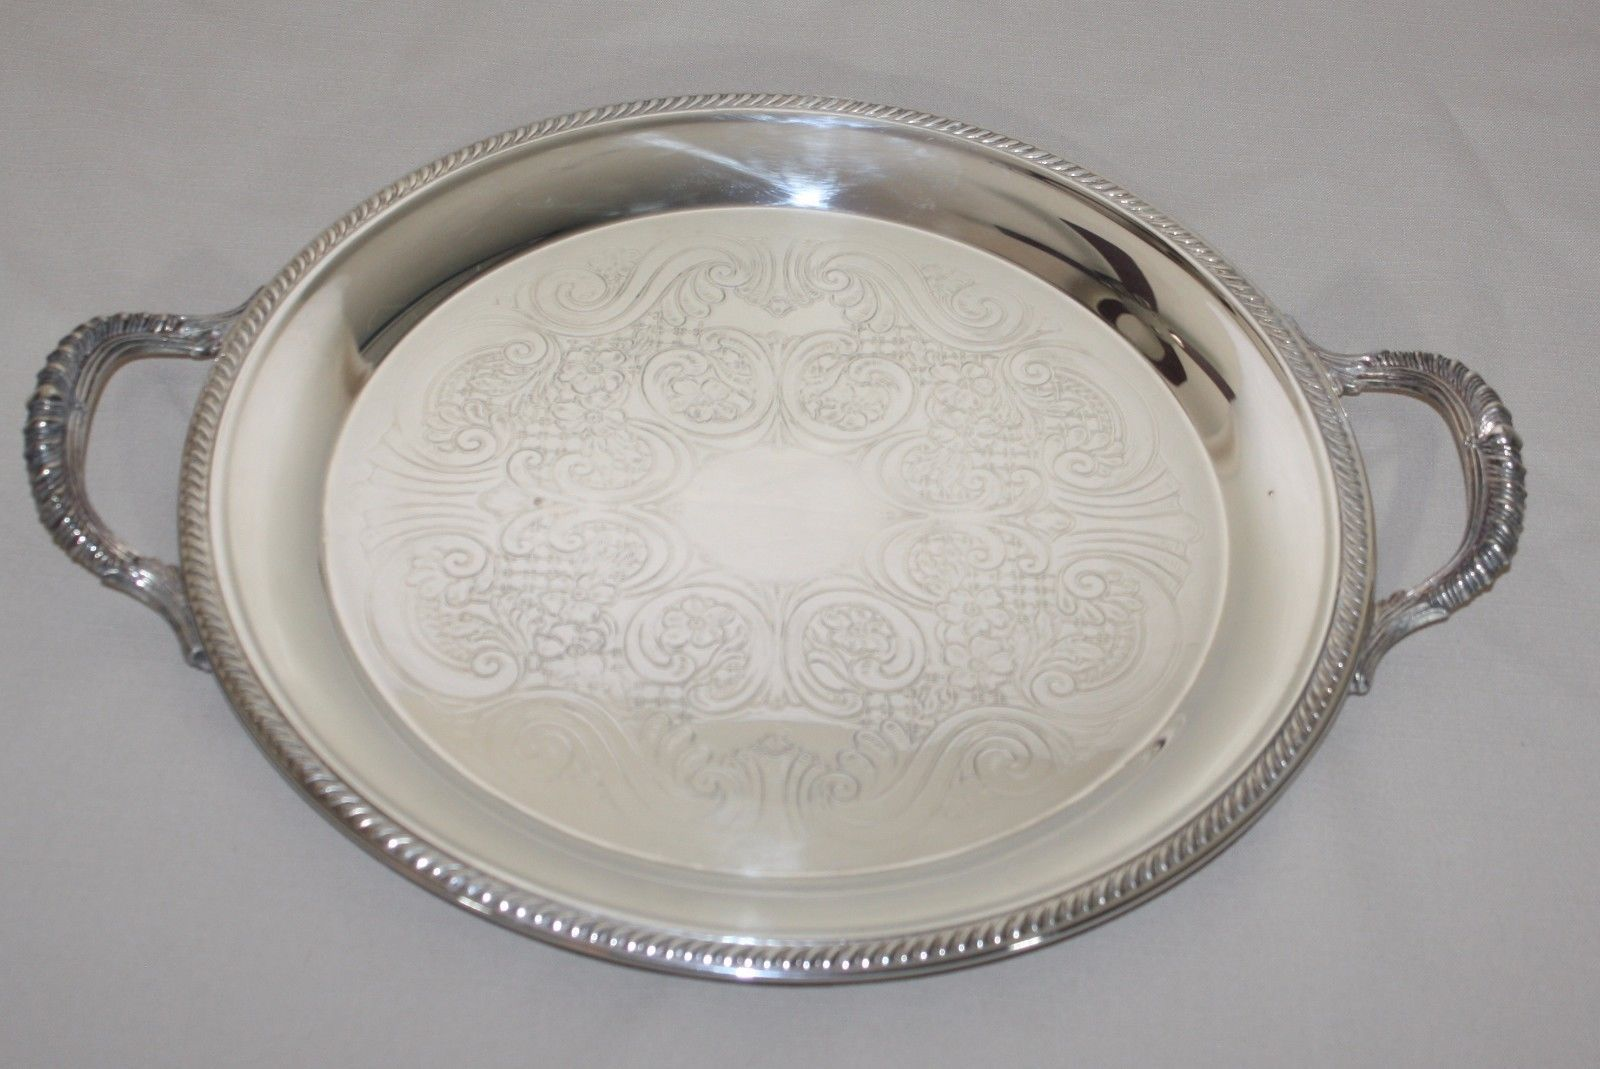 "Primary image for 15.5"" Round Silverplate Tray Rogers Oneida 6705 Handles Gadroon Edge Scrolls"